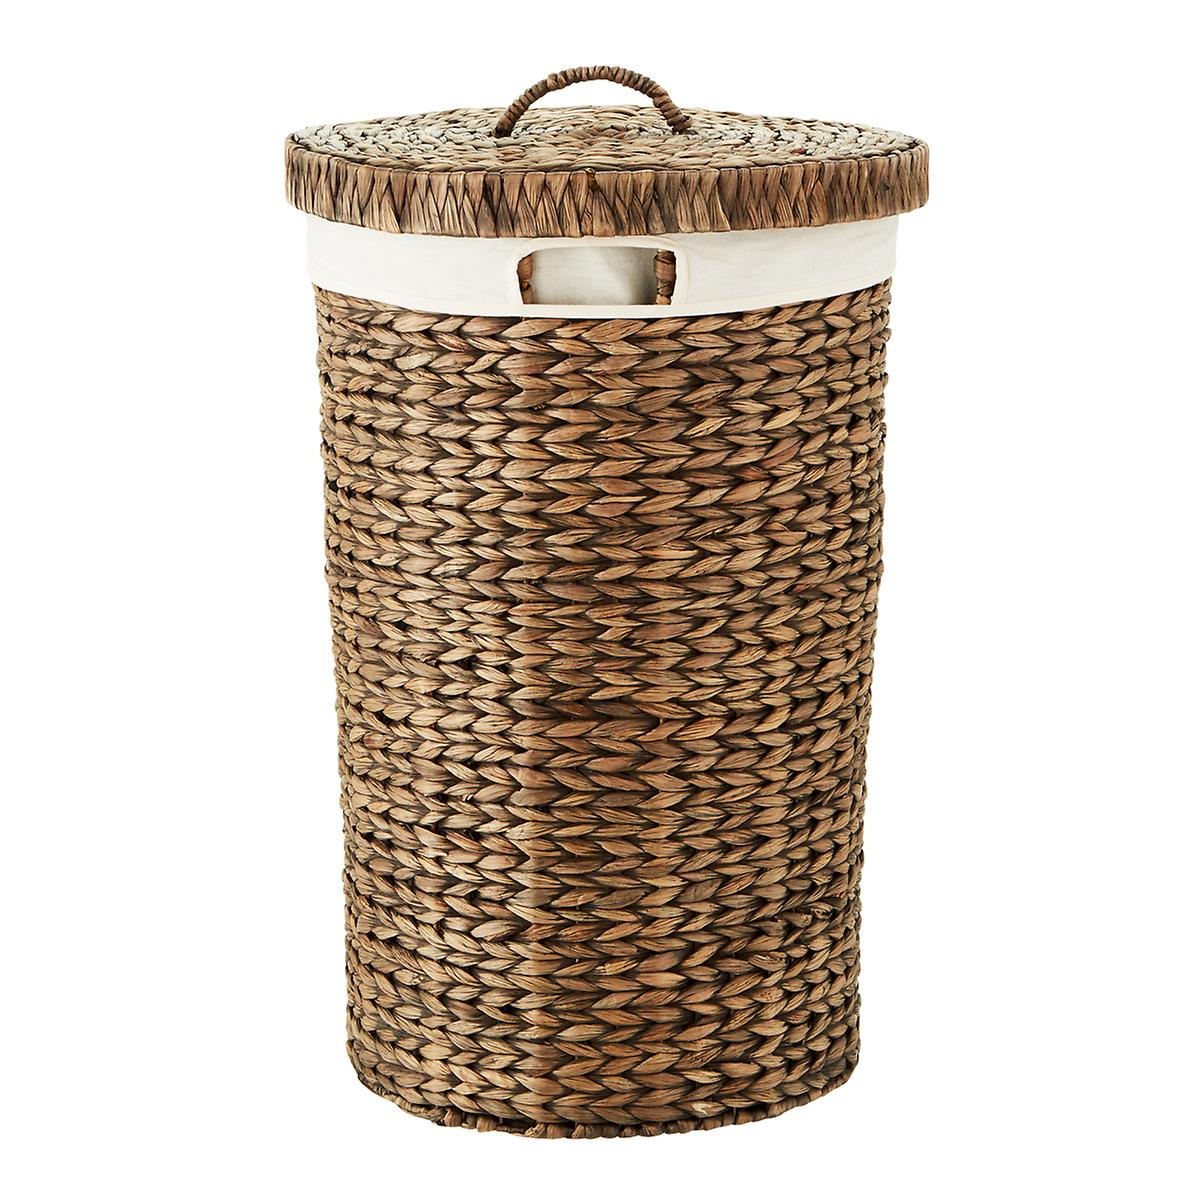 Mocha Round Water Hyacinth Hamper